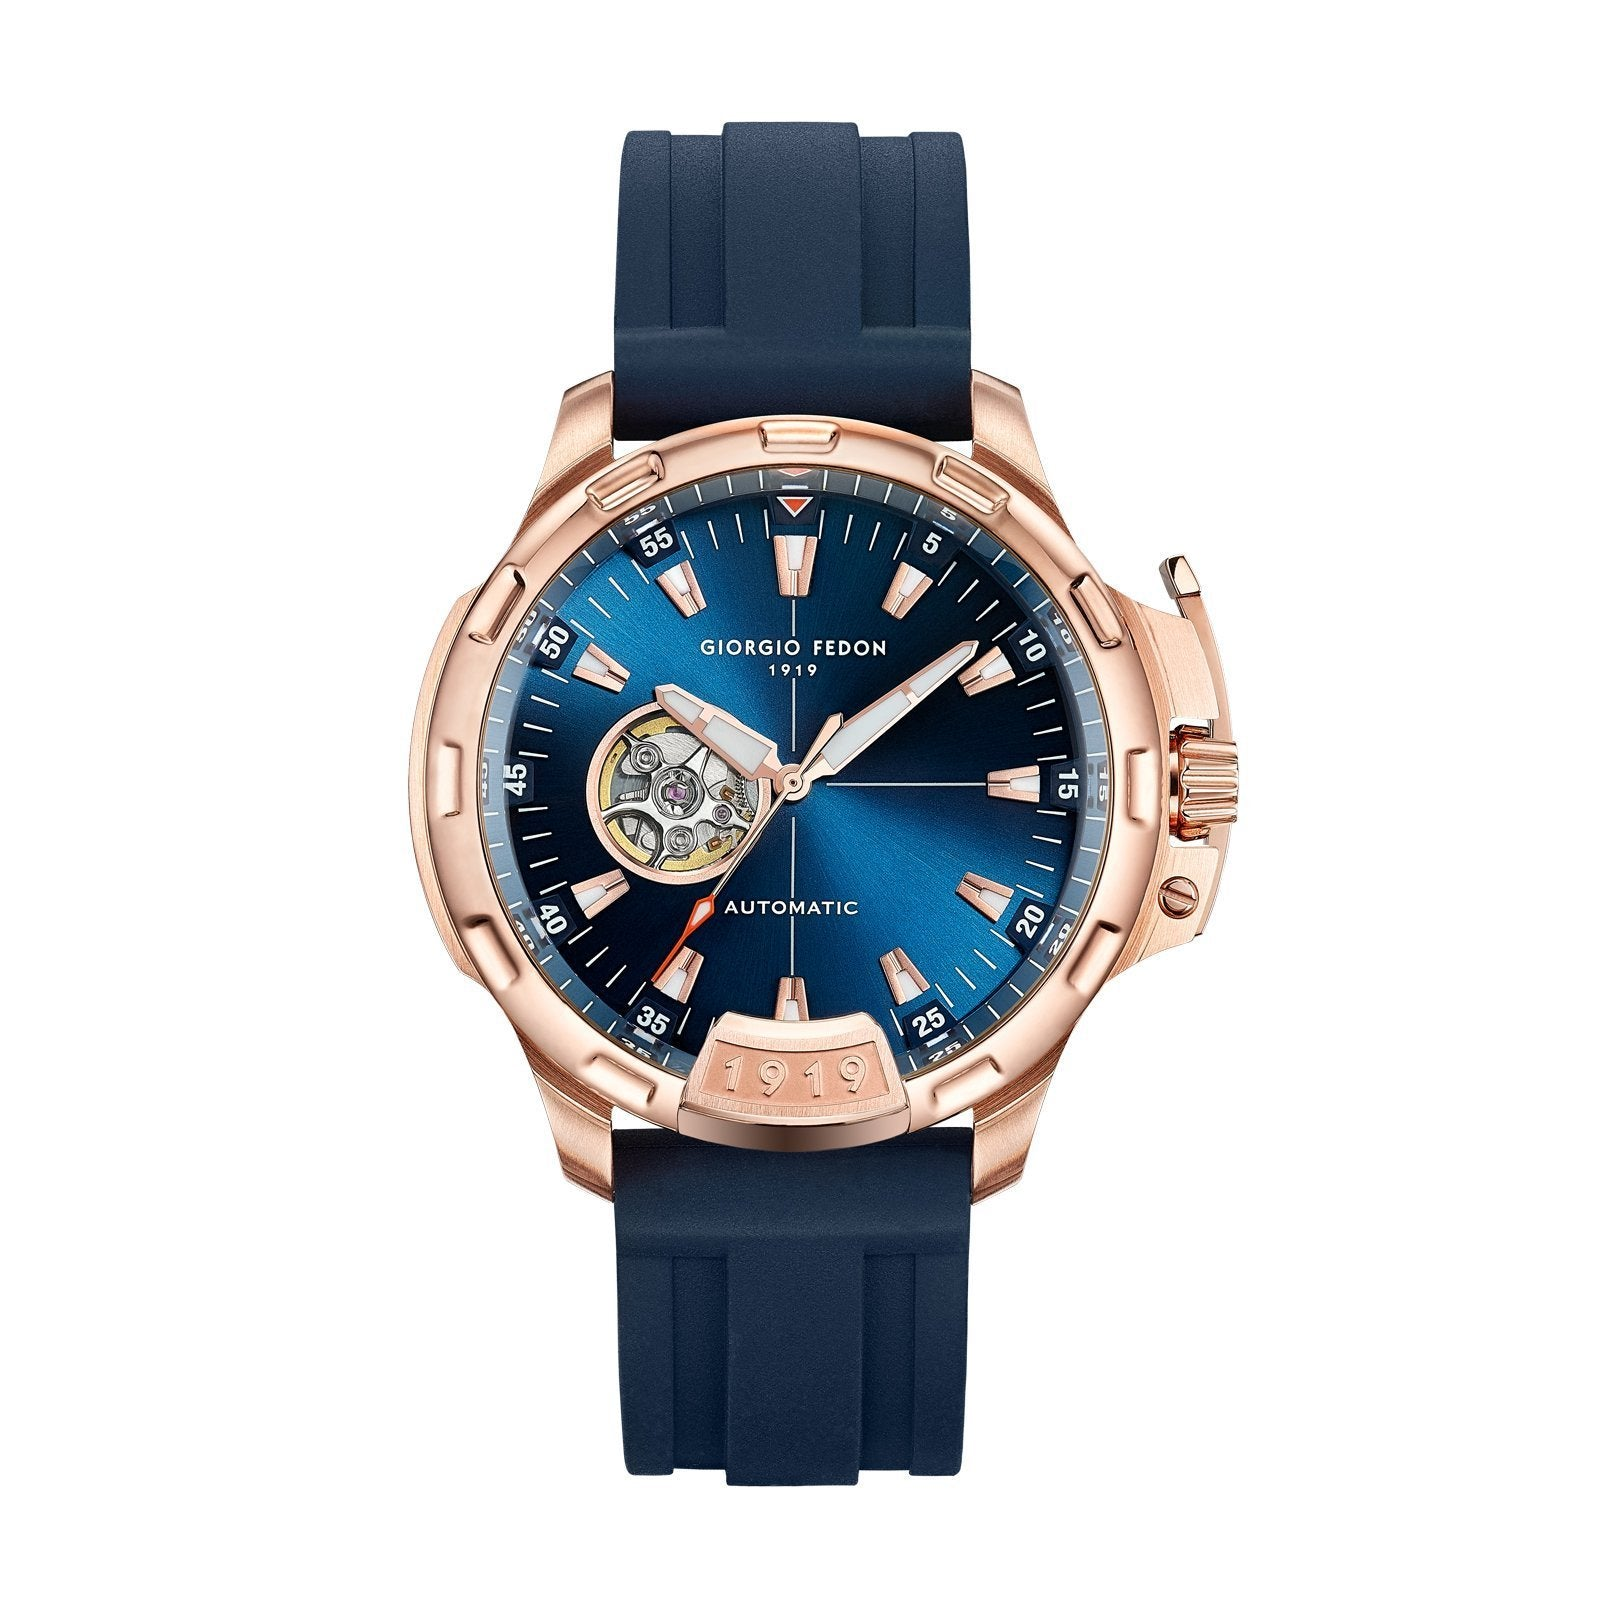 Giorgio Fedon Timeless IX IP Rose Gold - Watches & Crystals